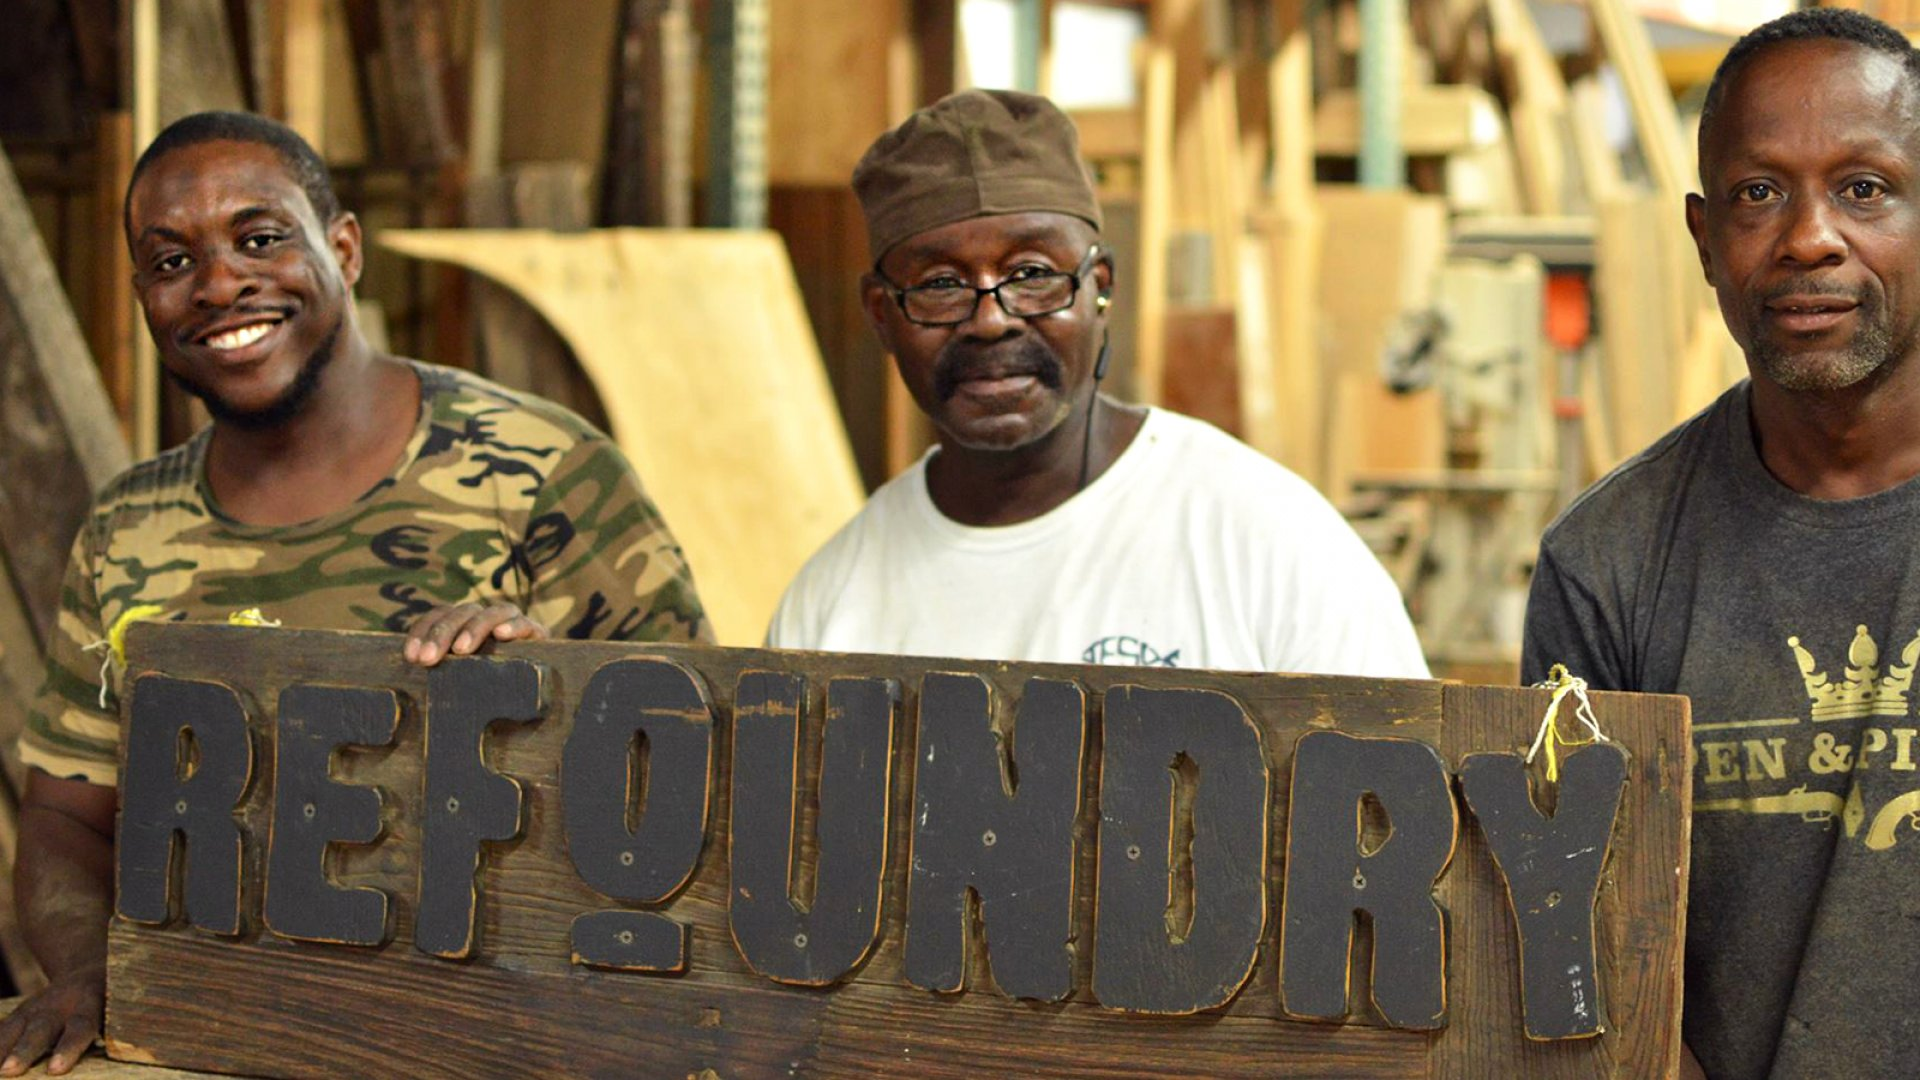 How This Incubator Helps Formerly Incarcerated People Start Their Own Businesses